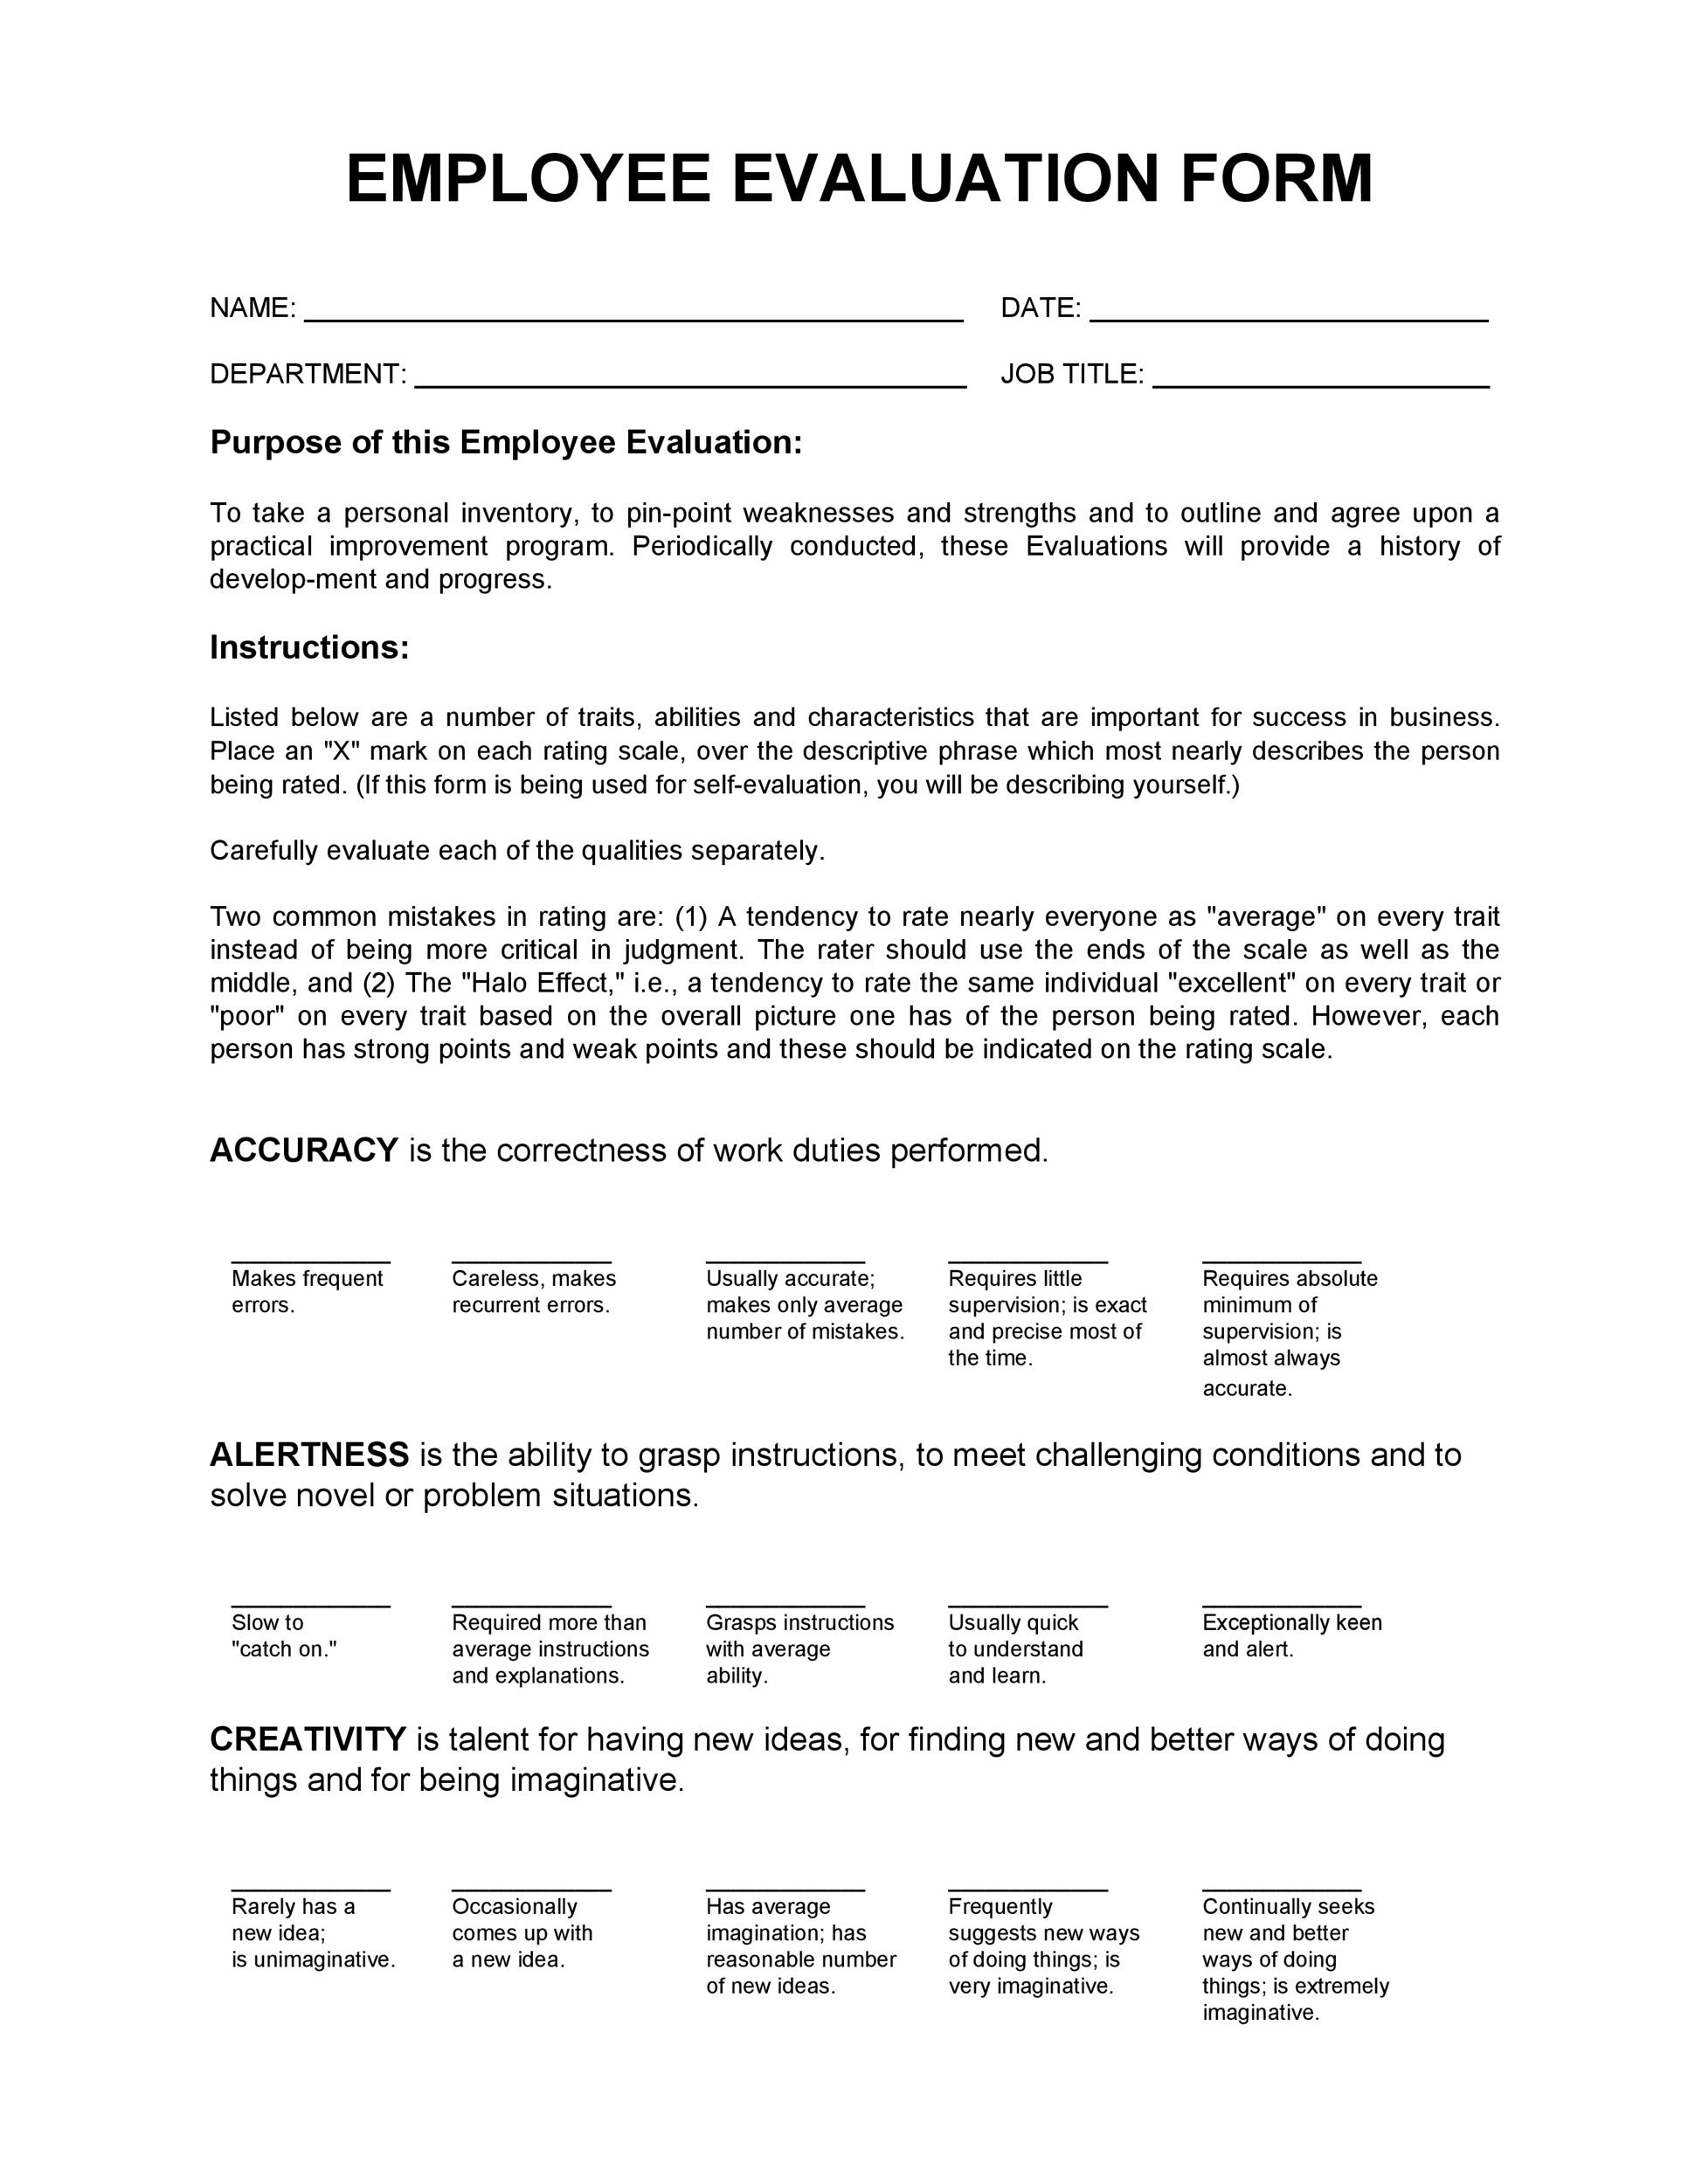 50+ Self Evaluation Examples, Forms  Questions - Template Lab - employee self evaluation form